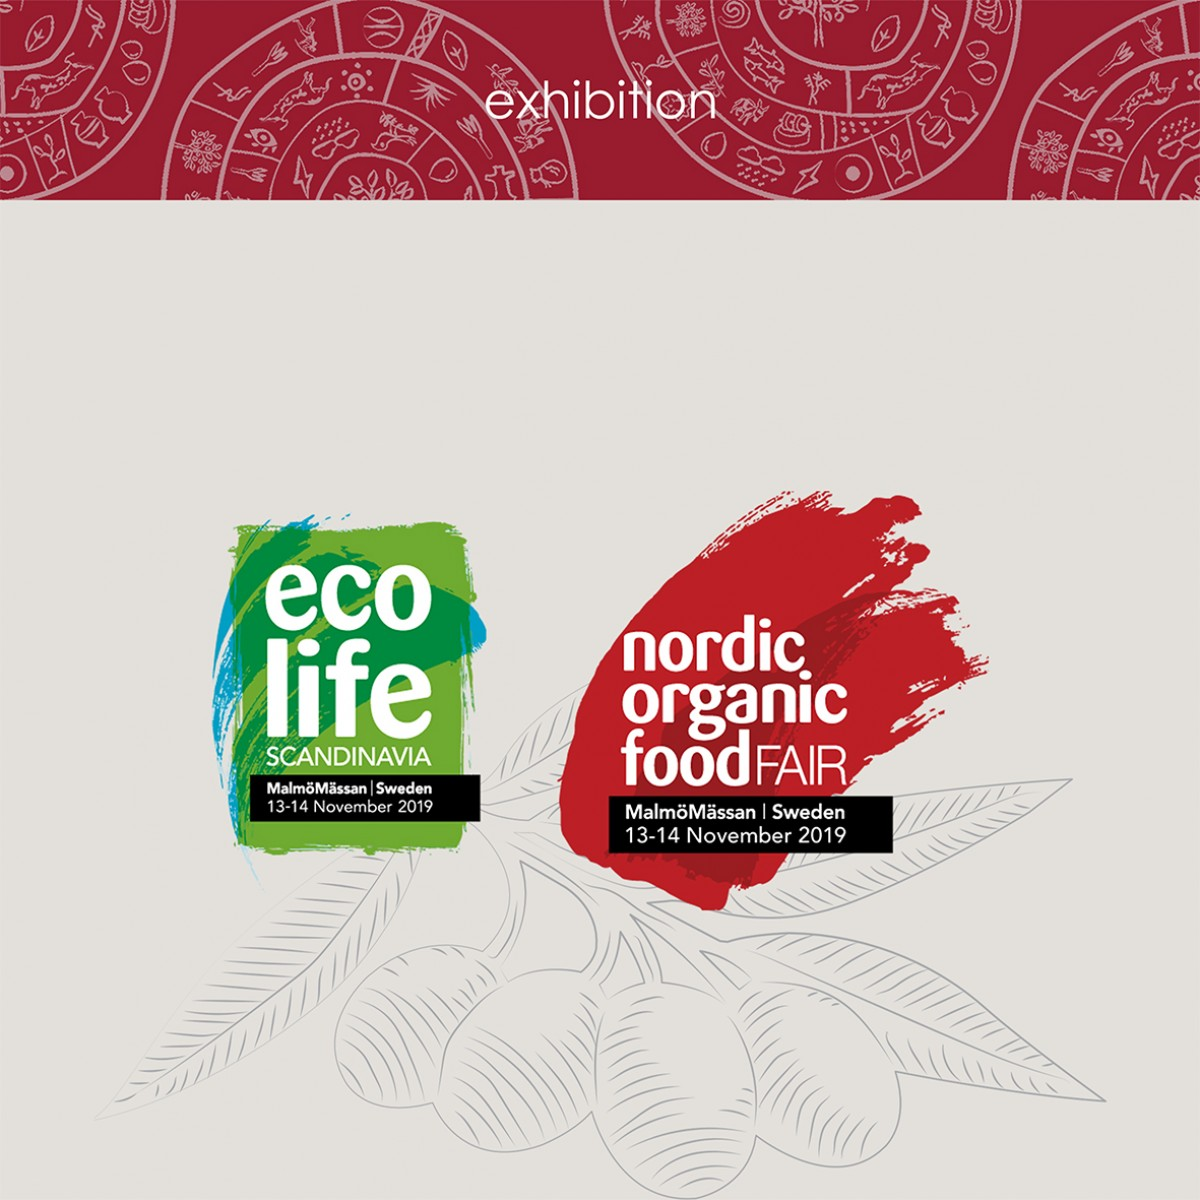 Our participation in the International Exhibition ECO LIFE SCANDINAVIA 2019